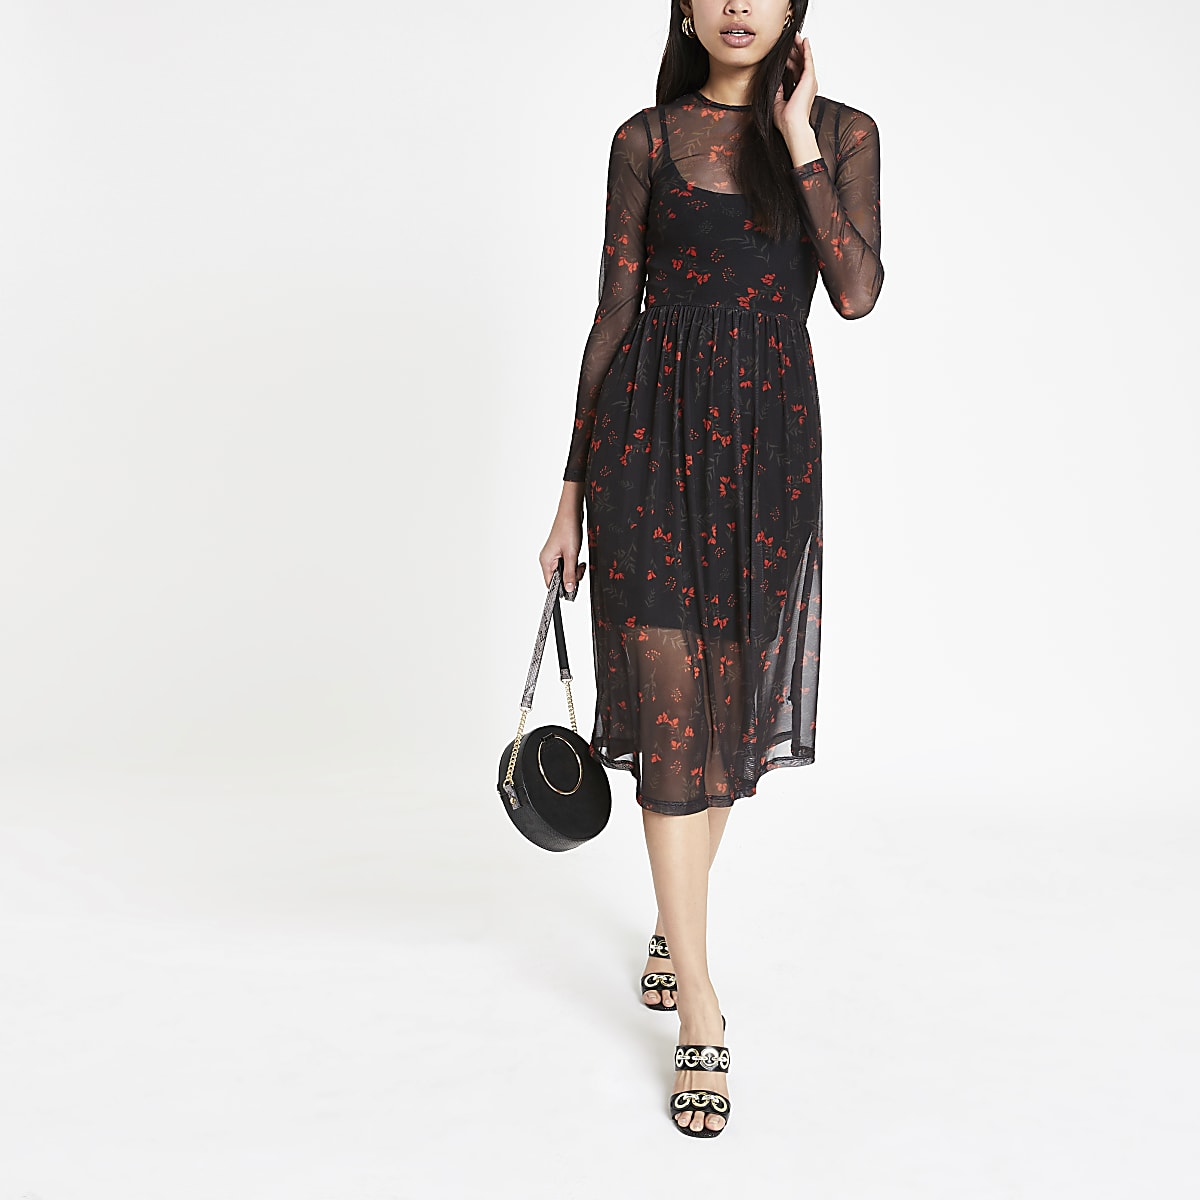 d65c814b893 Black floral mesh midi dress - Swing Dresses - Dresses - women